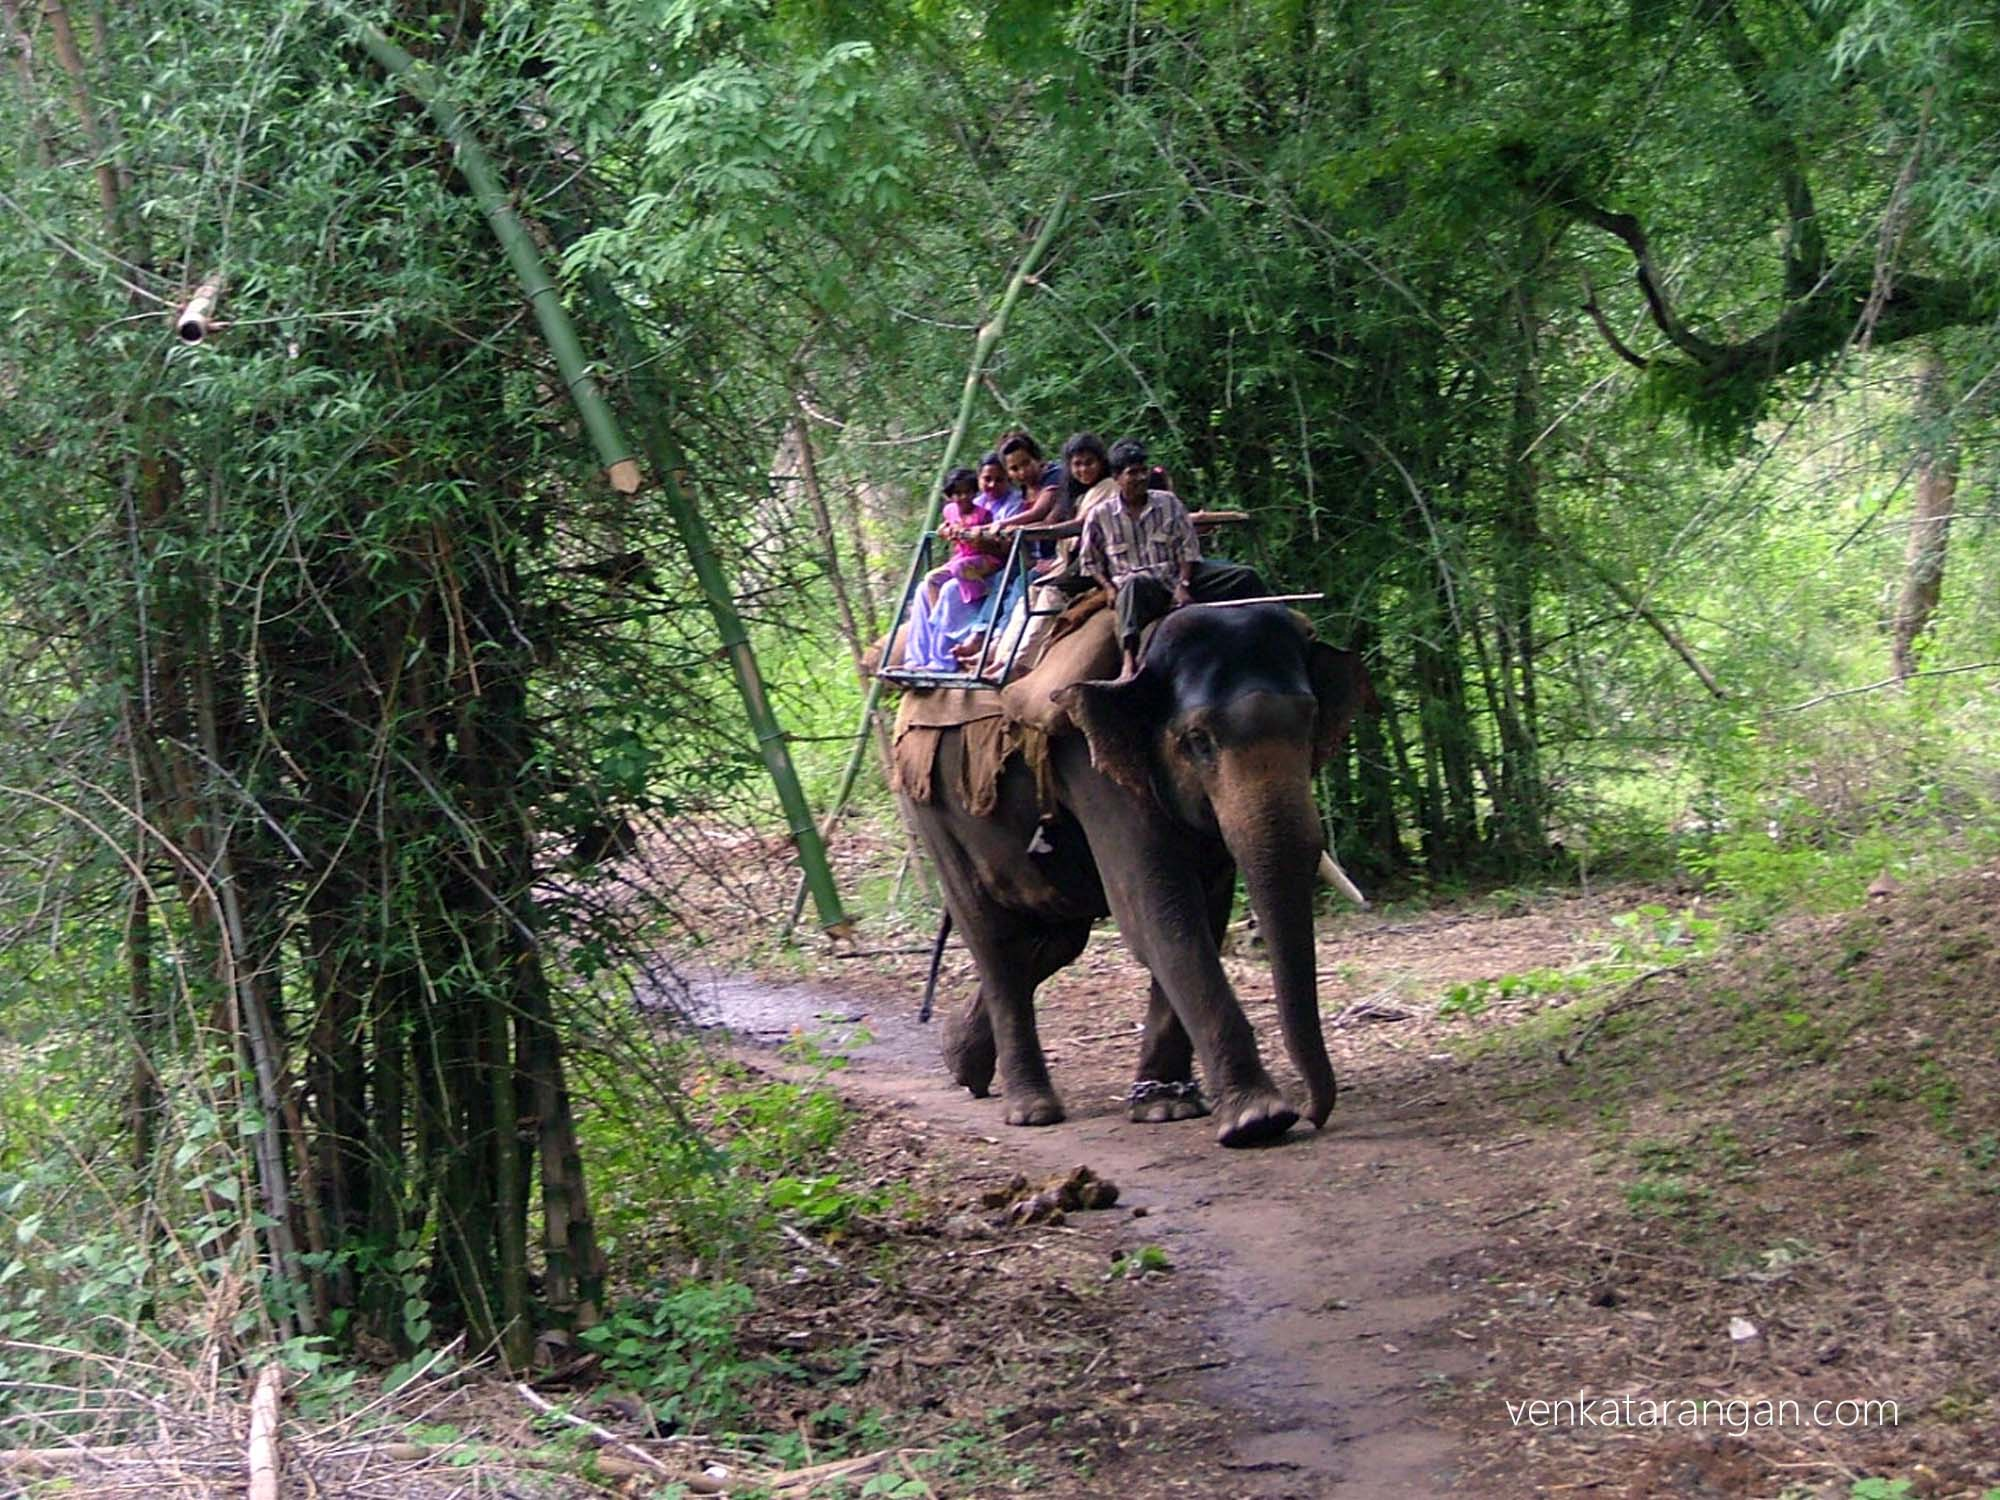 Elephant ride in a nature park nearby